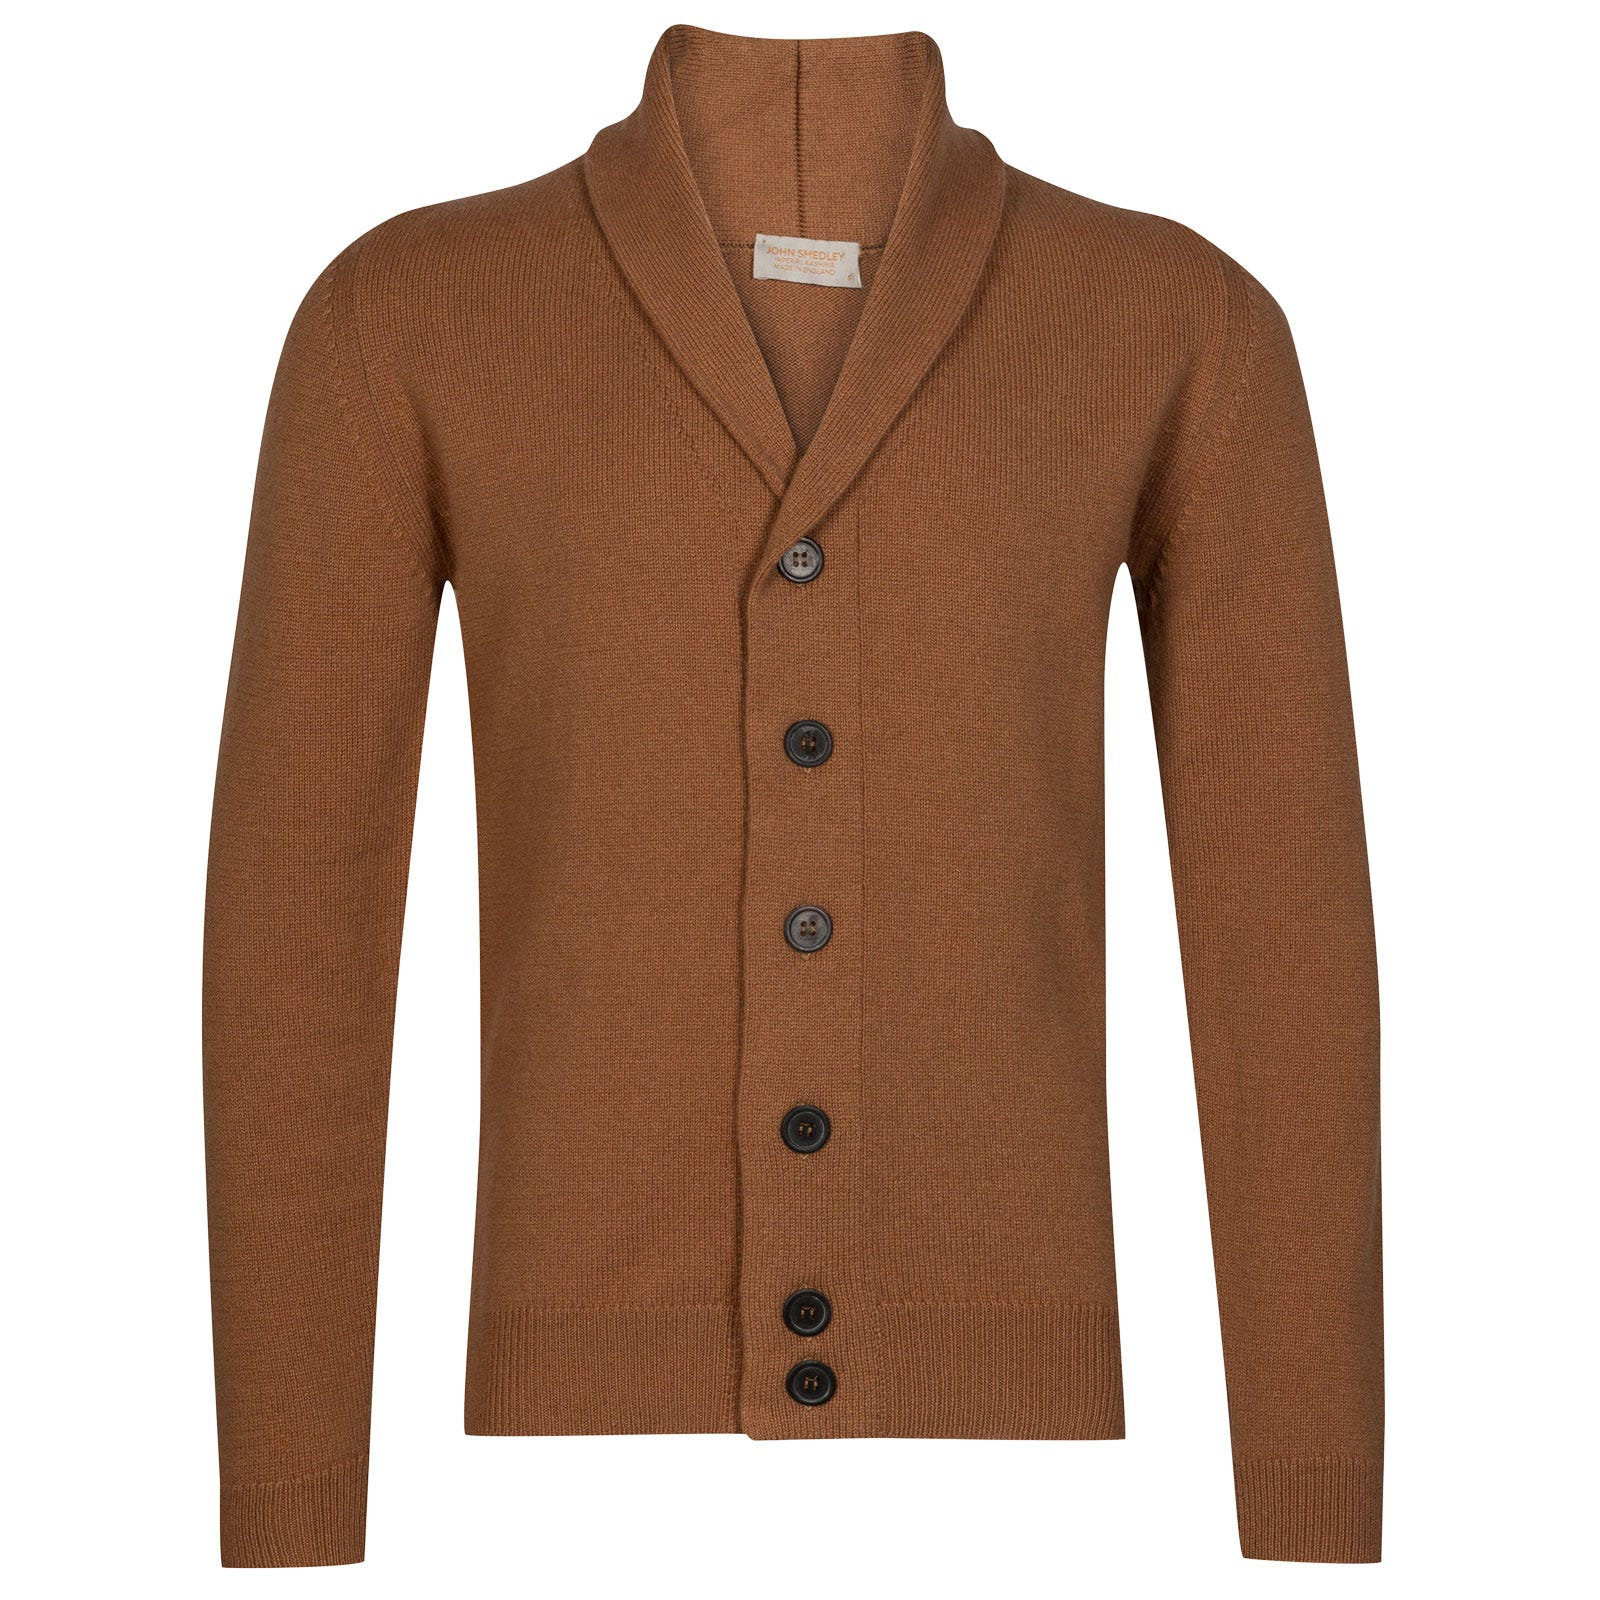 John Smedley patterson Wool and Cashmere Jacket in Camel-M